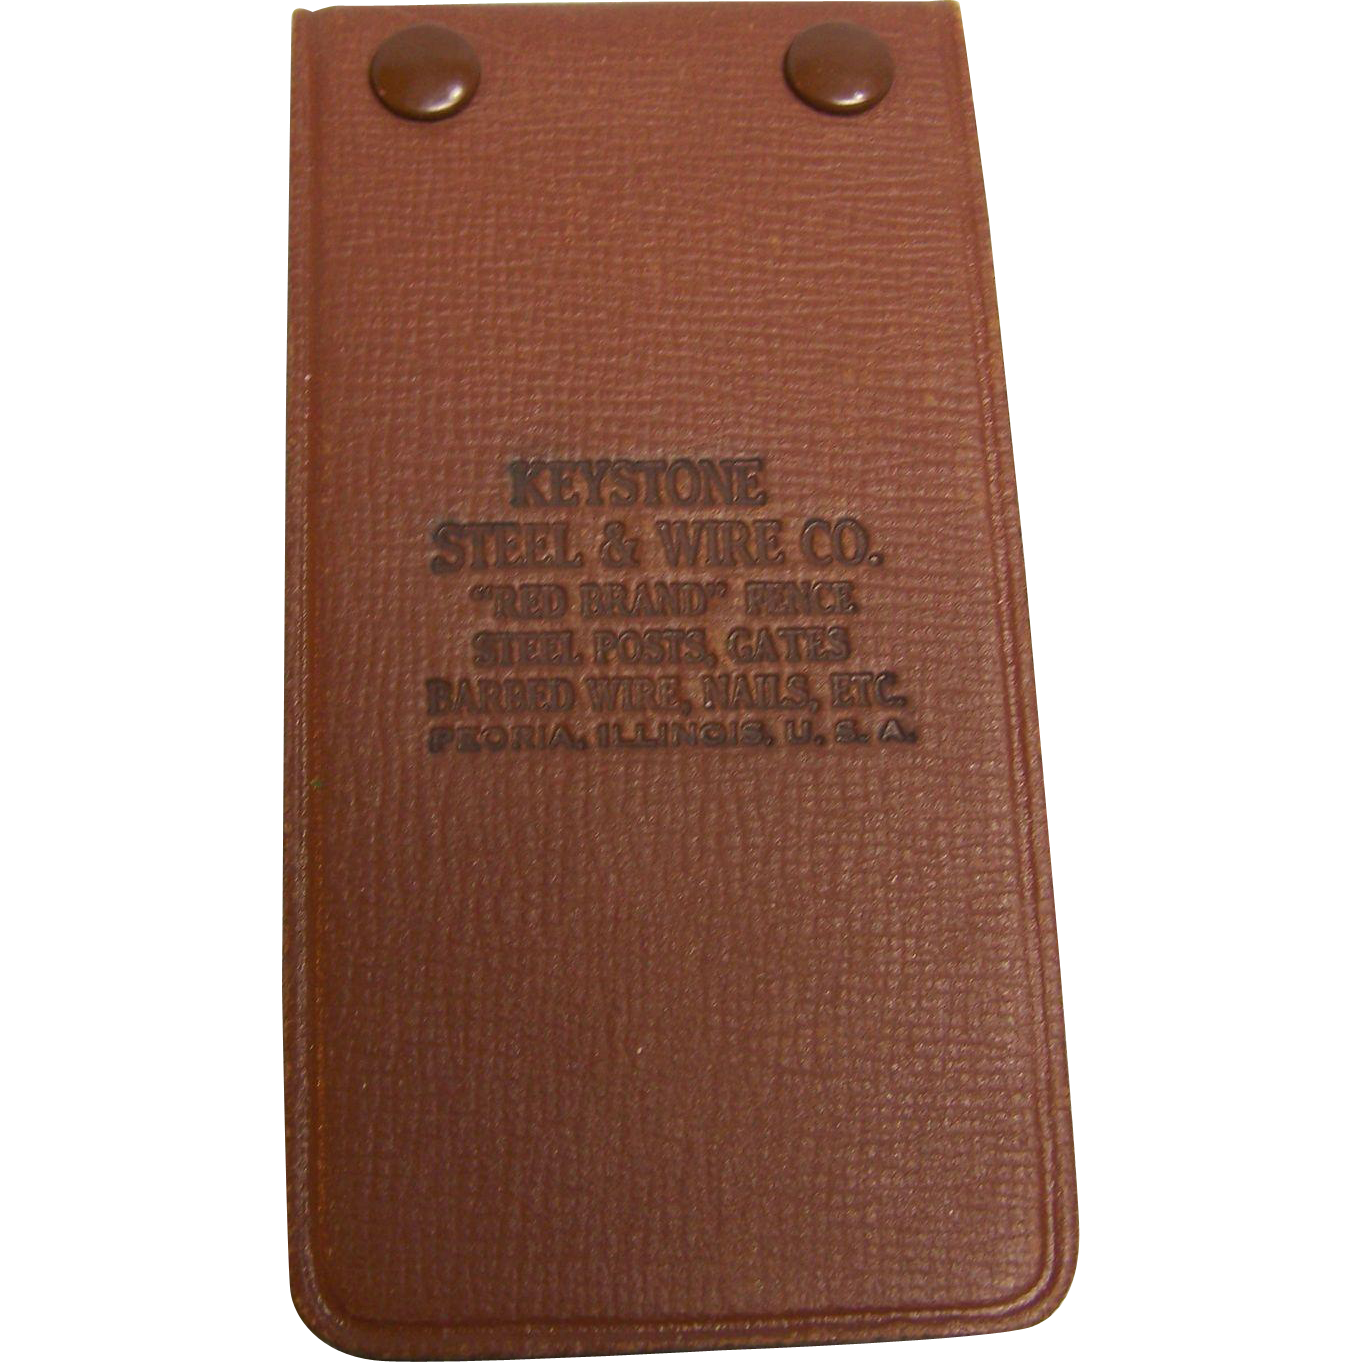 Advertising Pocket Notebook Keystone Steel & Wire Co